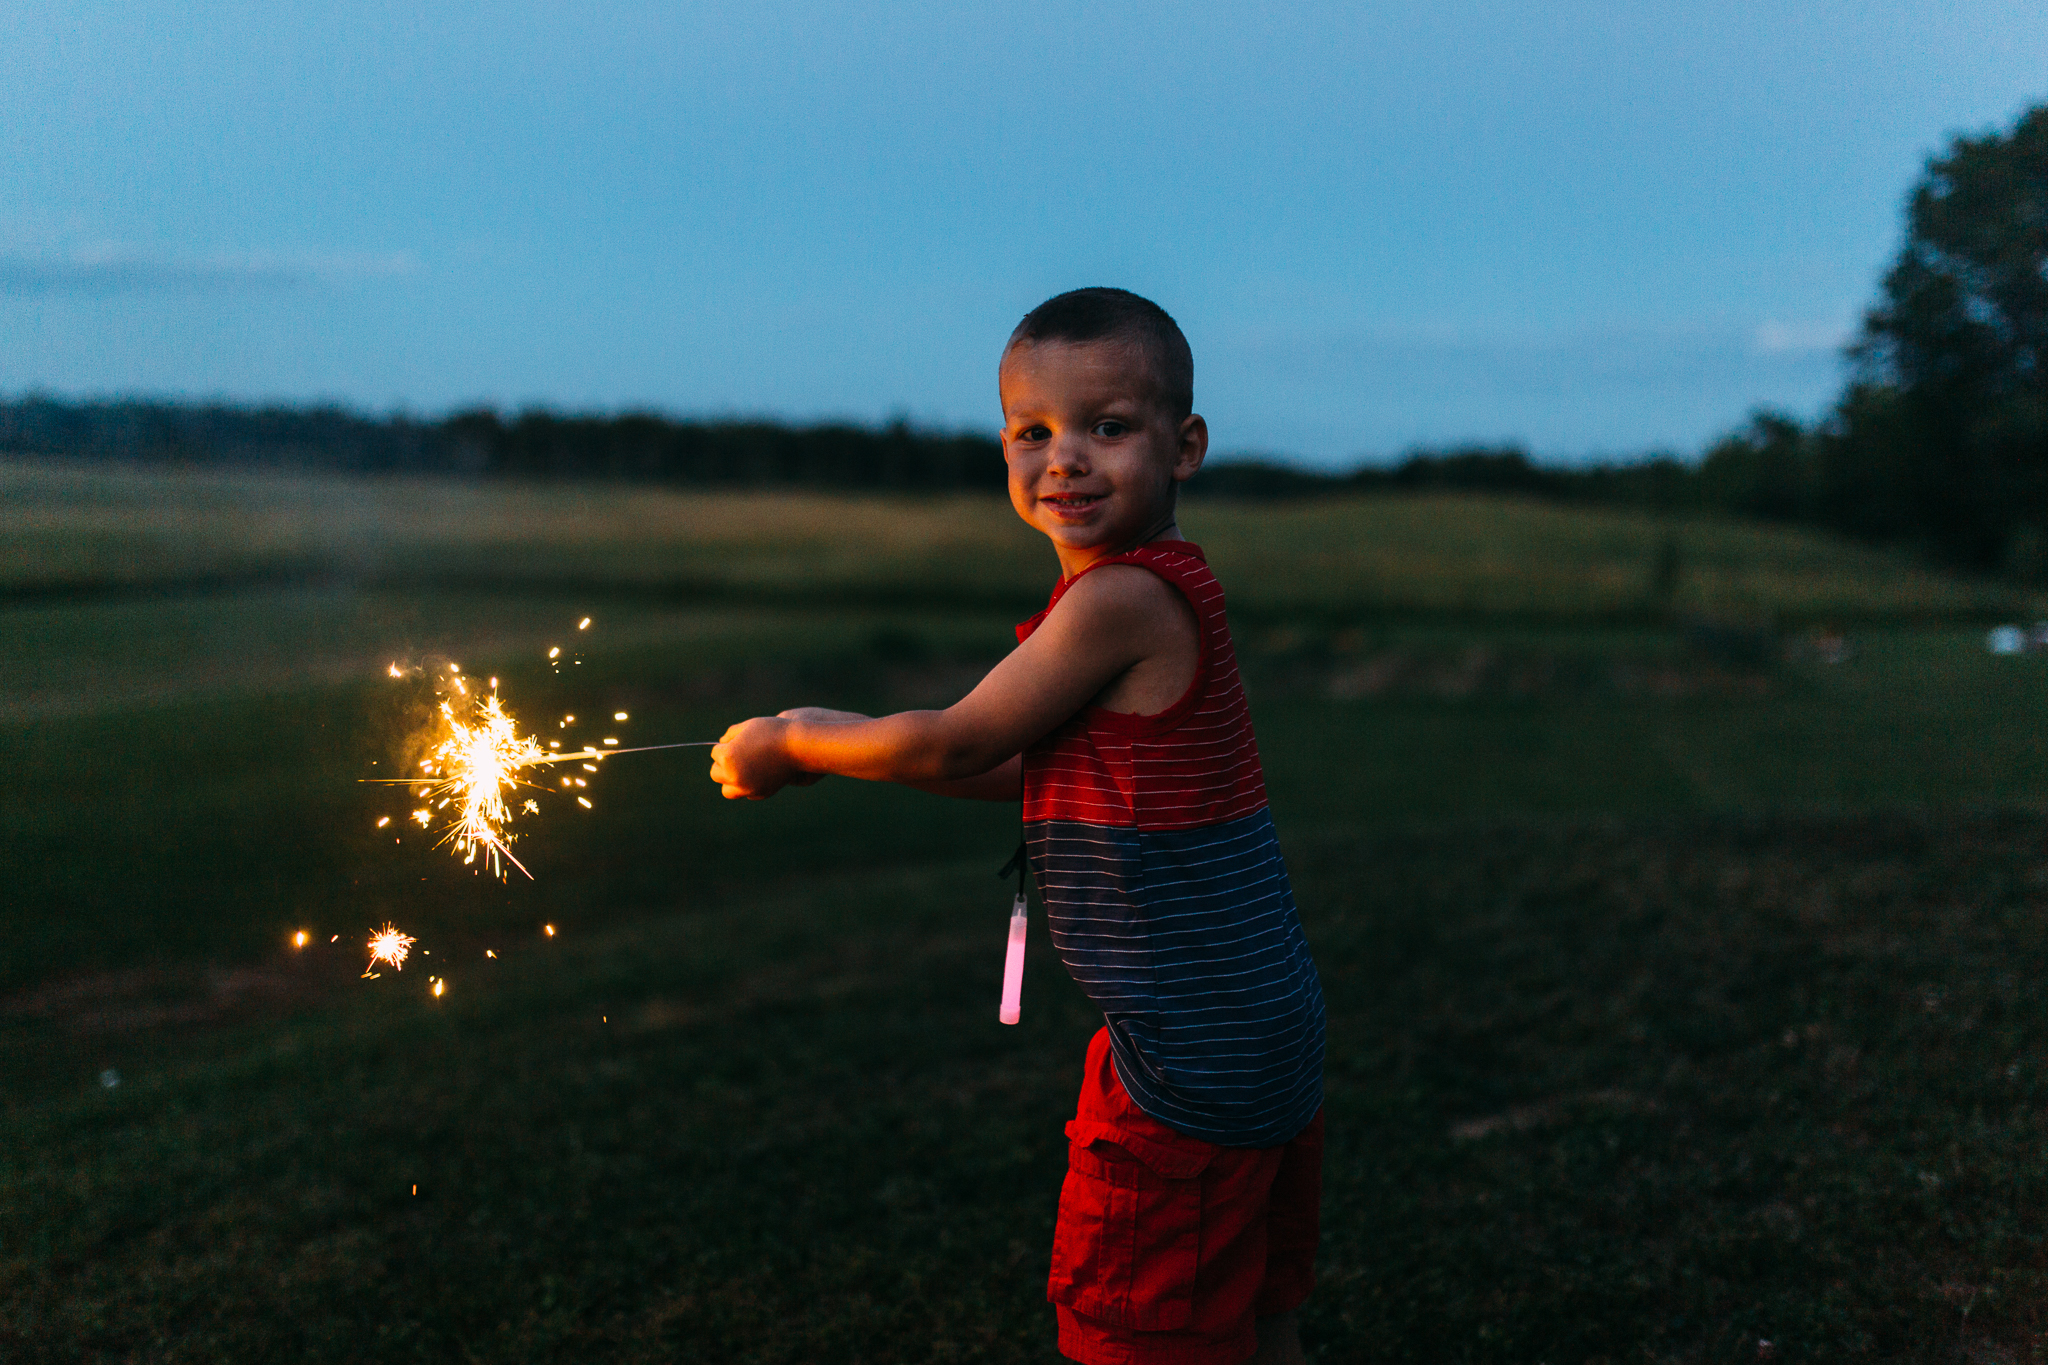 4th-july-fireworks-sparklers-documentary-family-party-photography-6.jpg